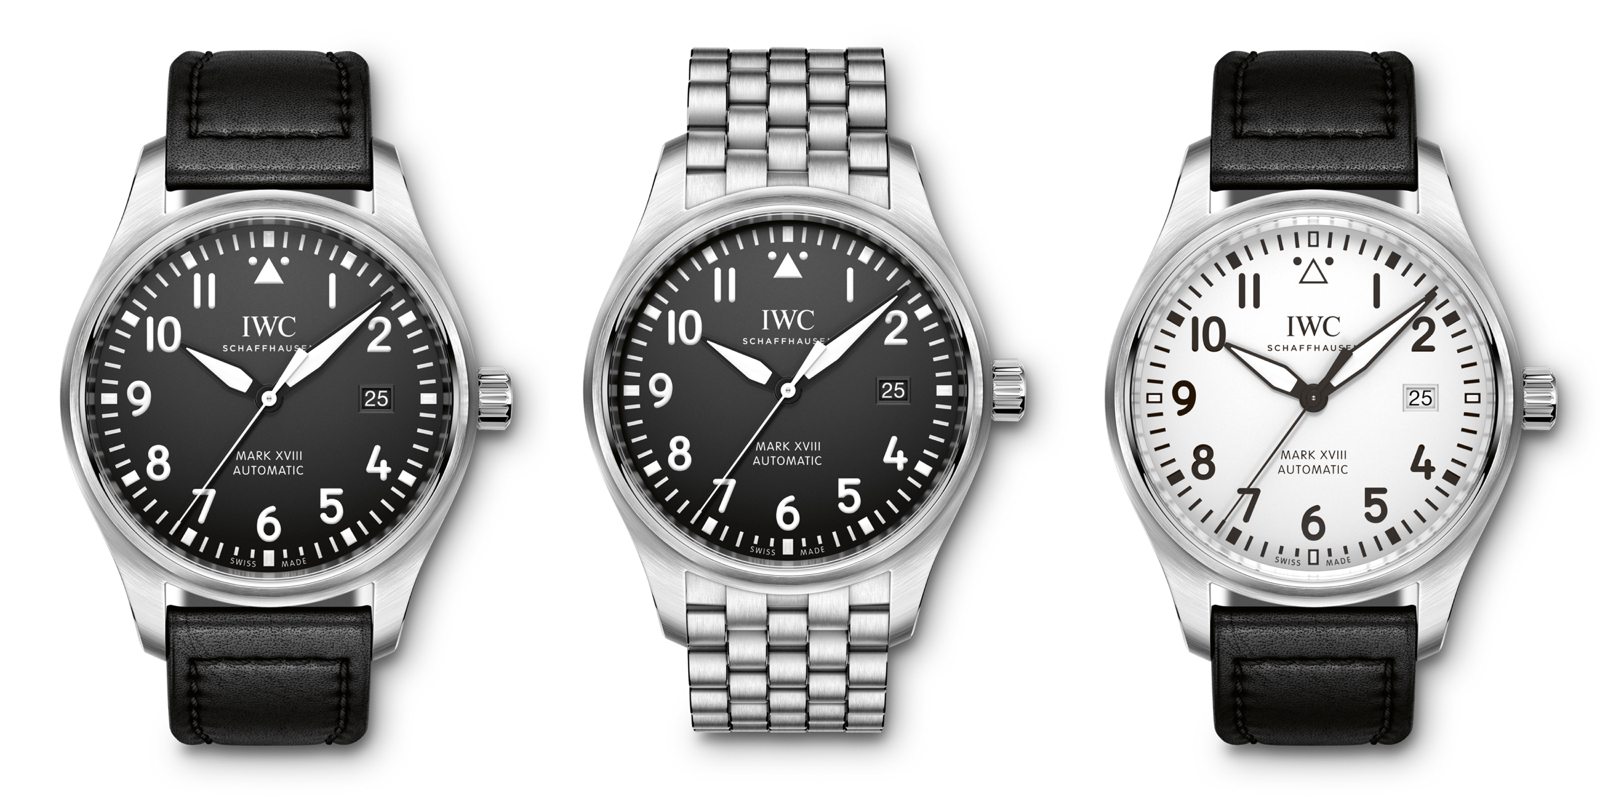 IWC 2016 Pilot Watch Mark XVIII Faces